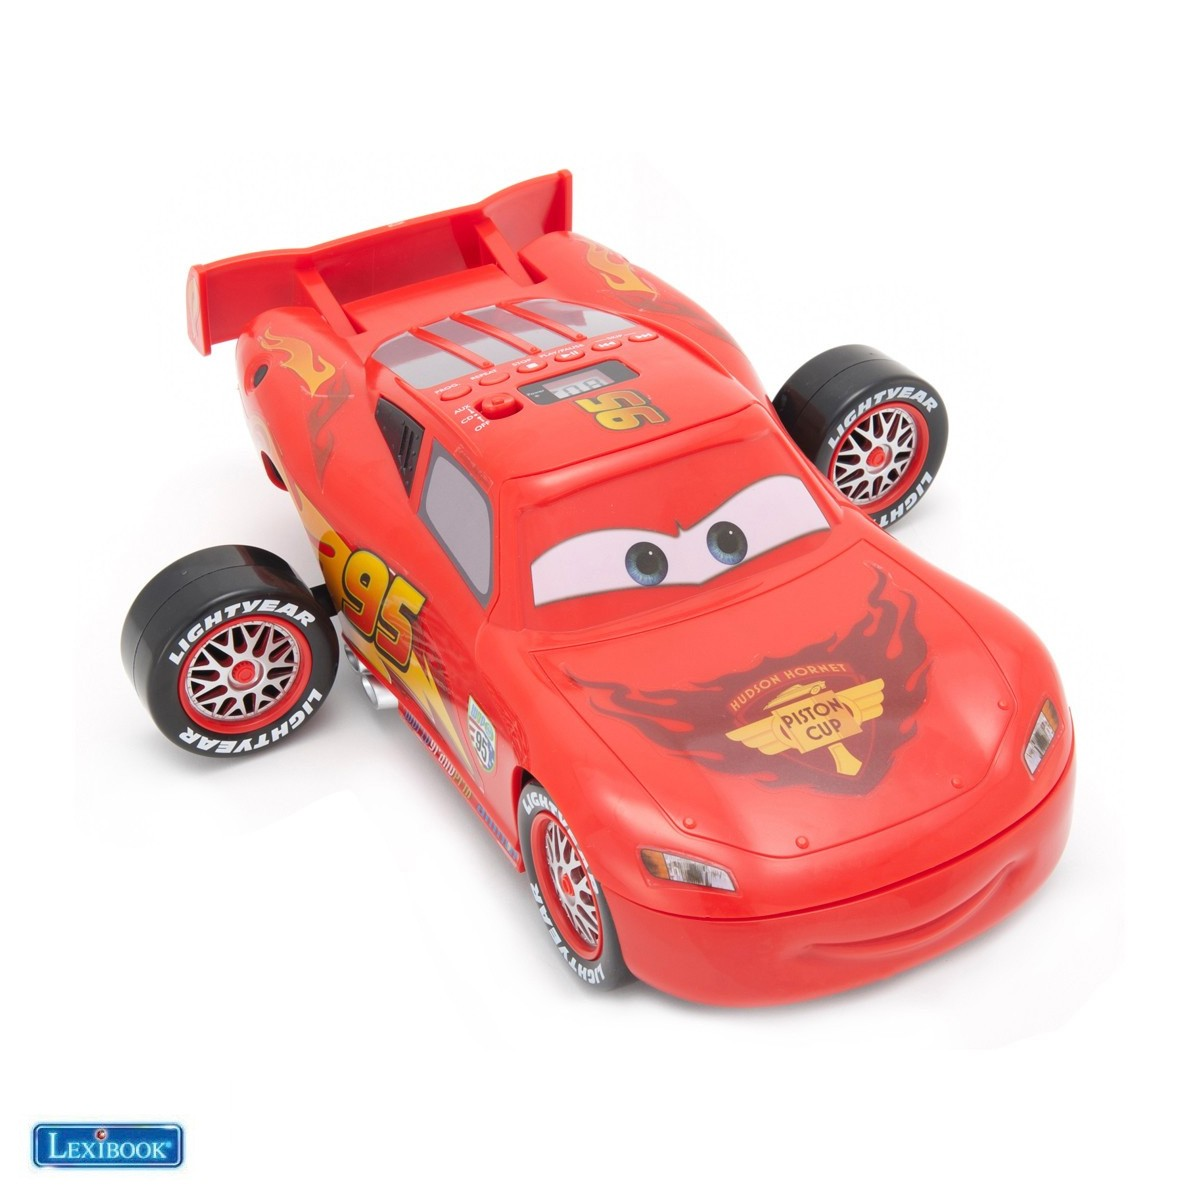 Lecteur CD Disney Cars - Lexibook